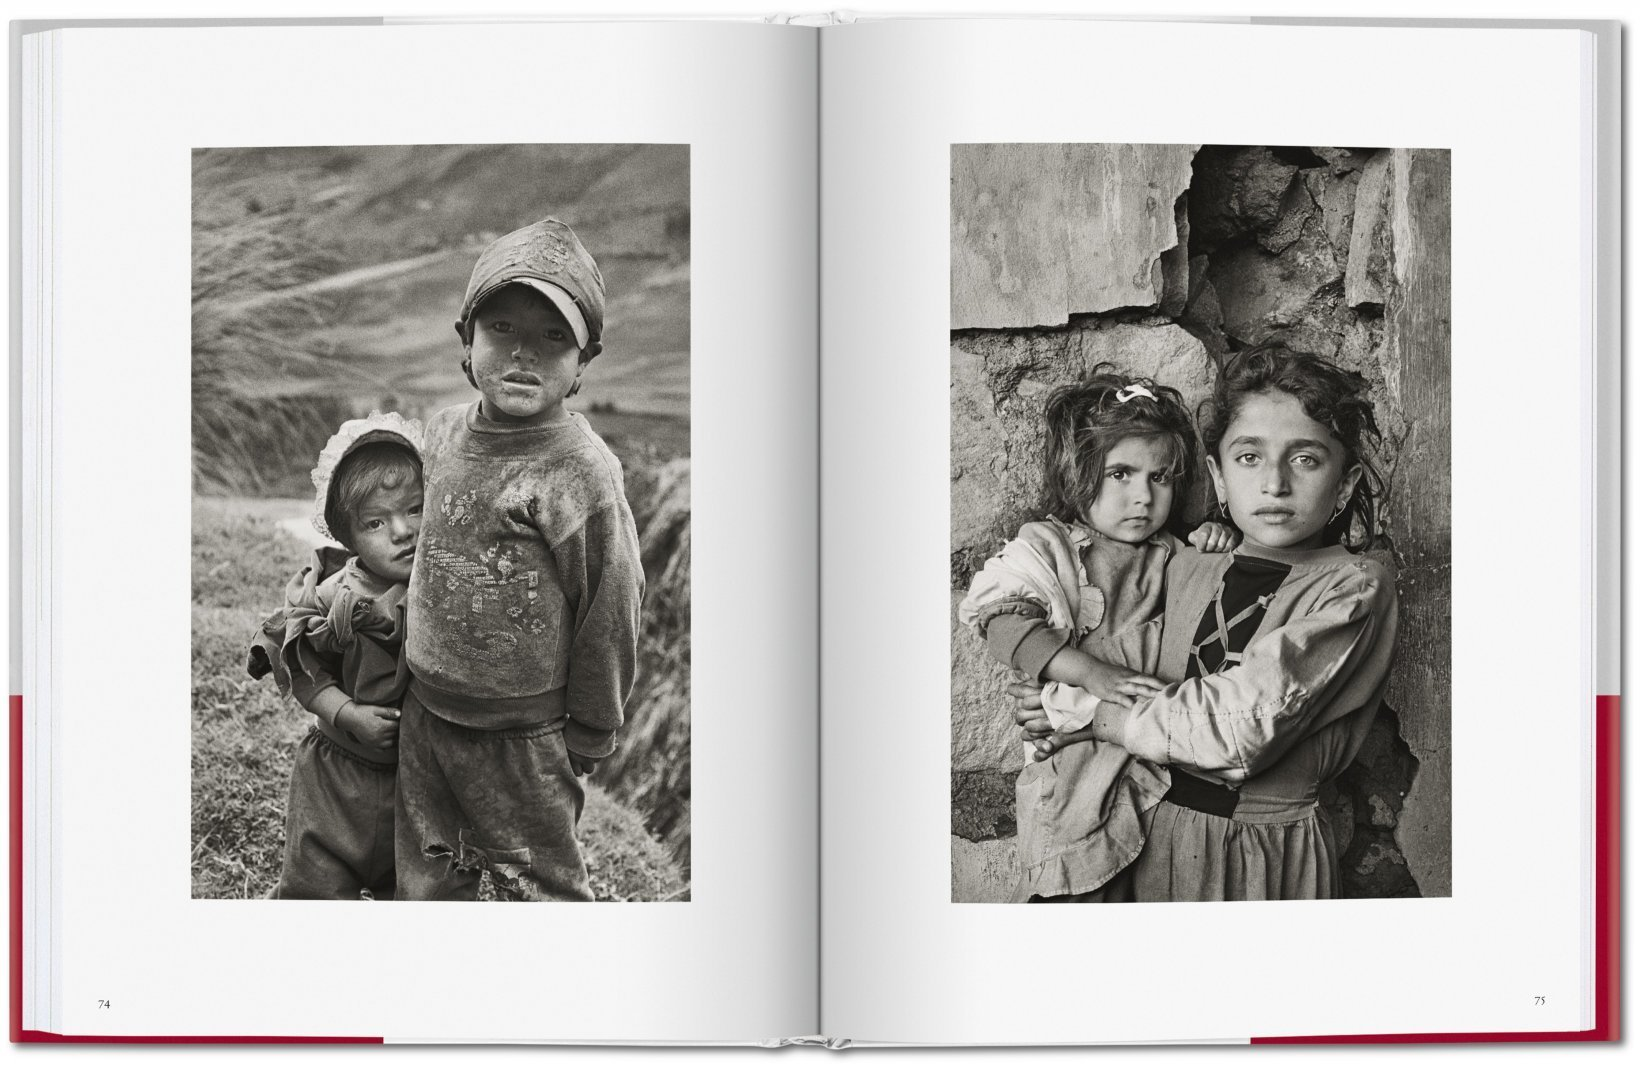 fo-salgado_children-image_05_05317